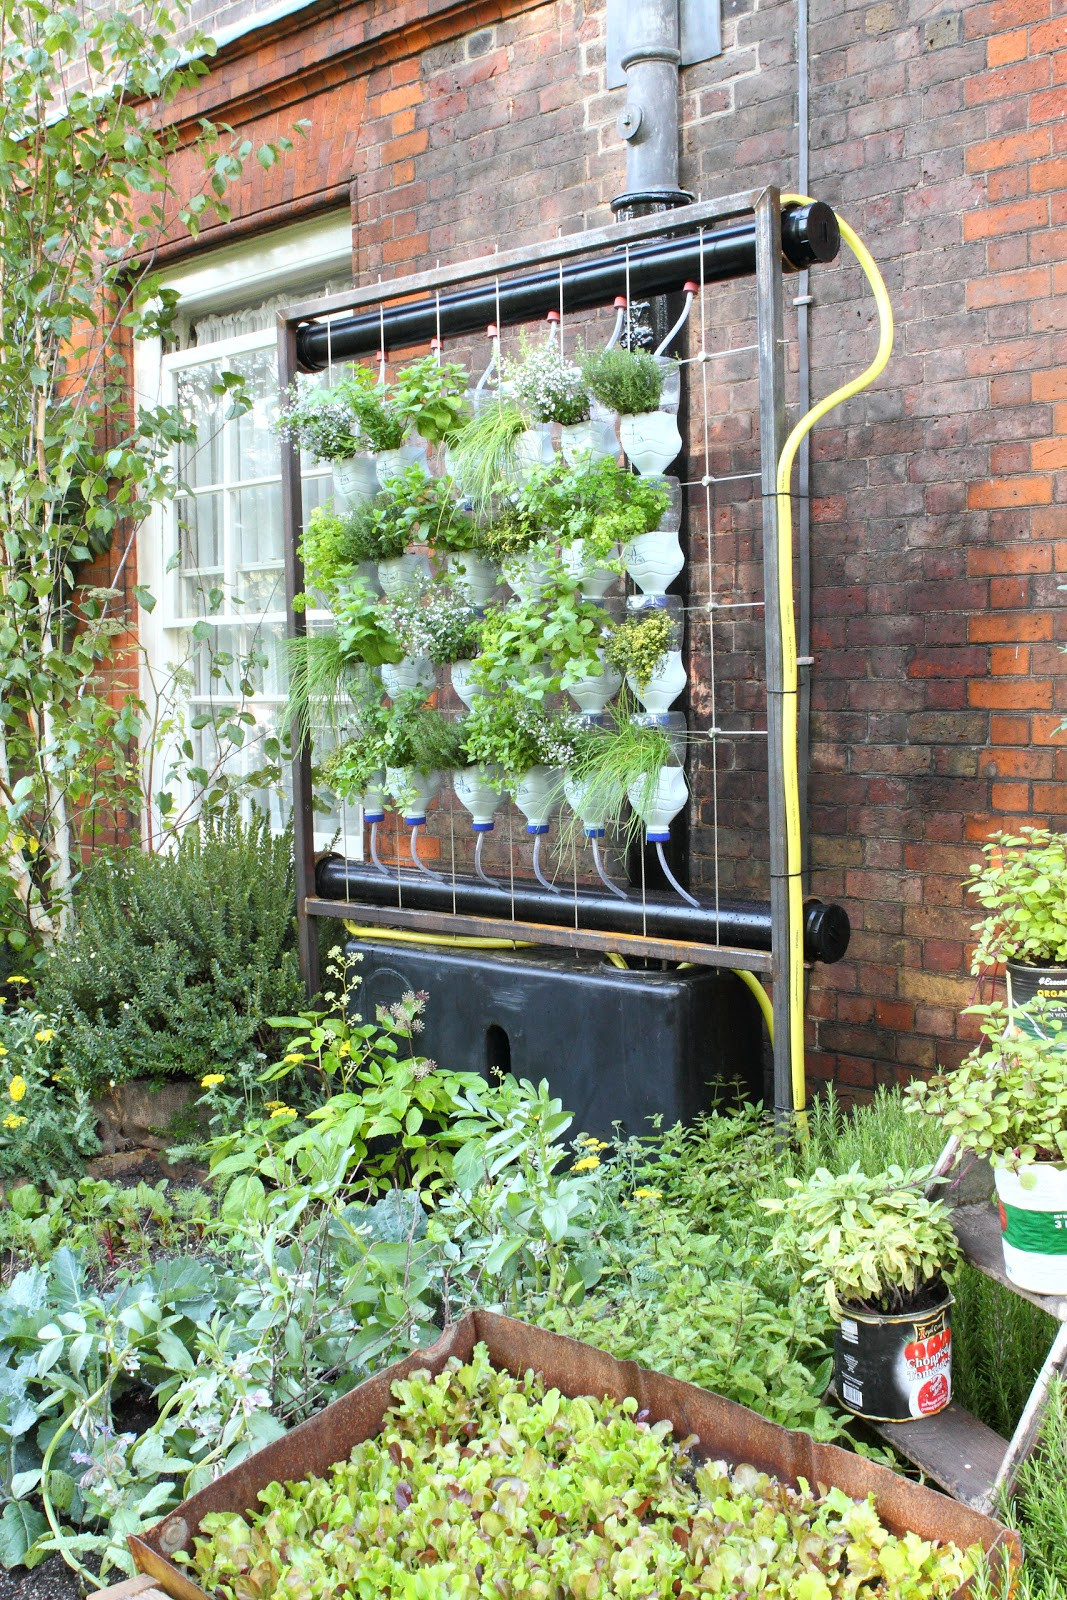 Best ideas about Vertical Hydroponic Garden . Save or Pin Deb s Dust Bunny Prince Charles Sustainable Garden Party Now.